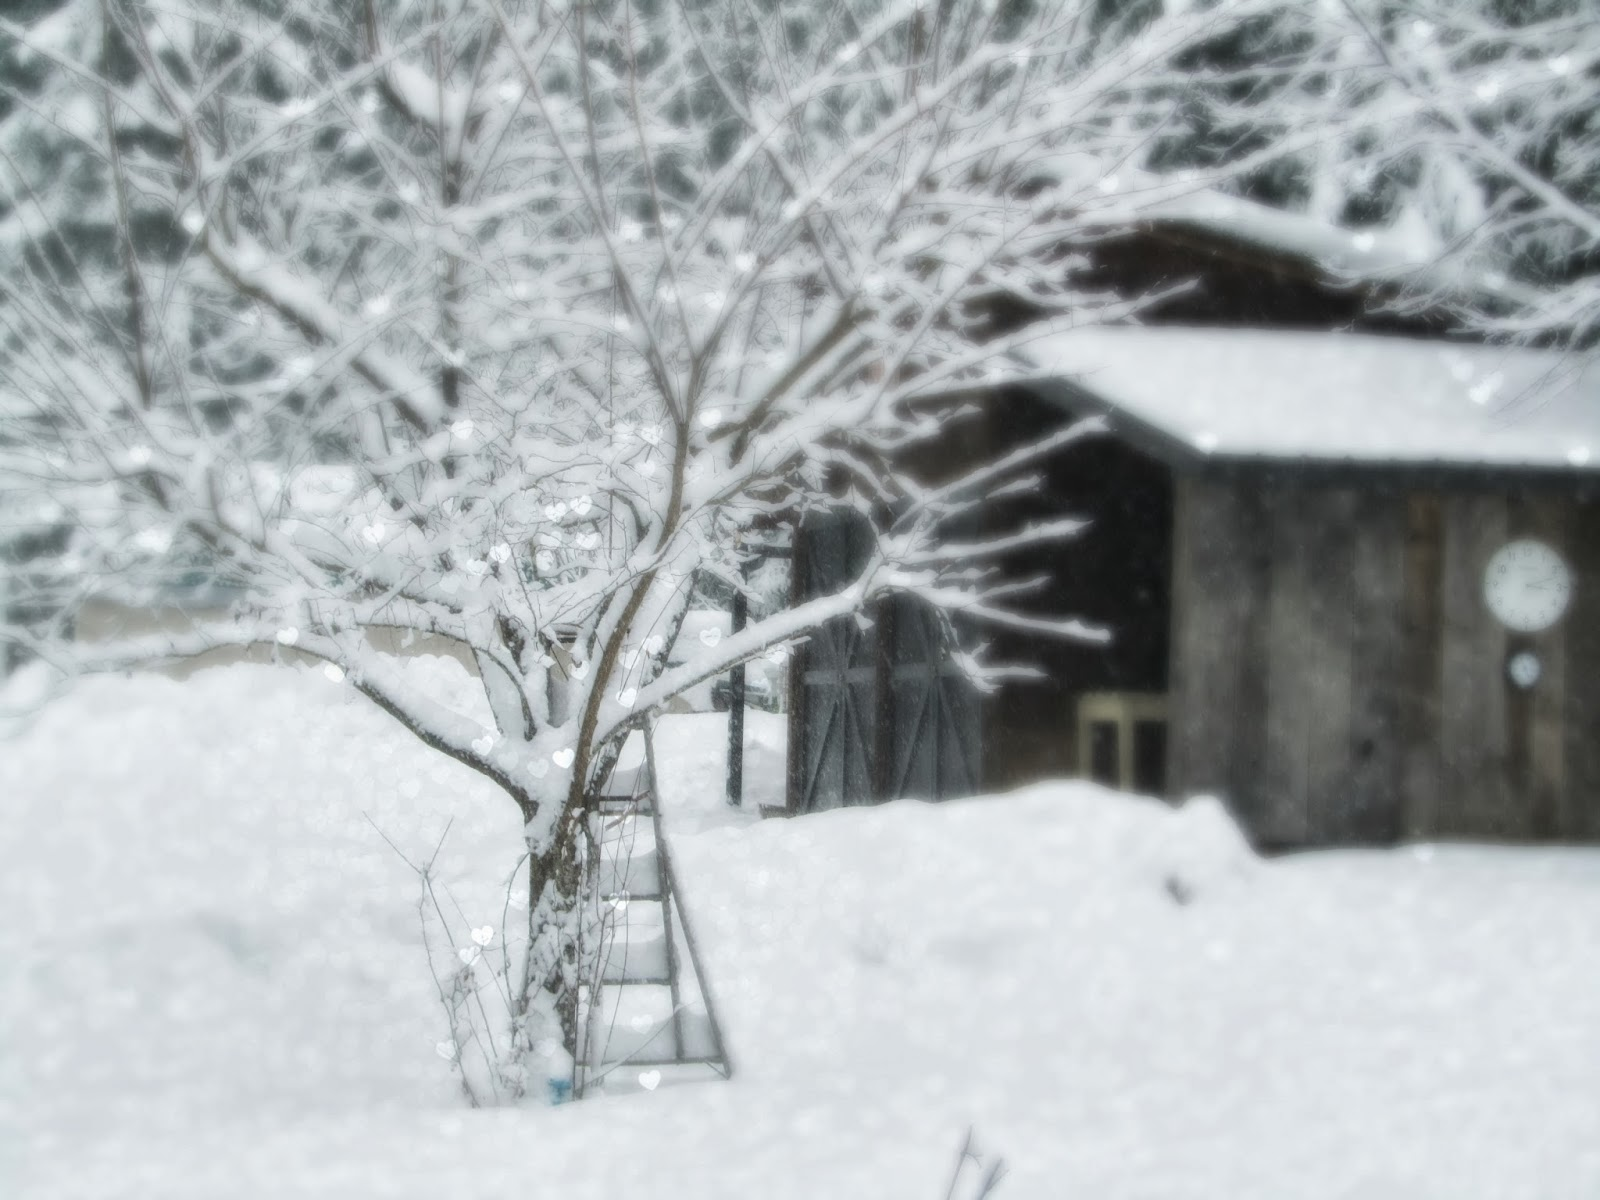 Fresh snow on the plum tree and shed